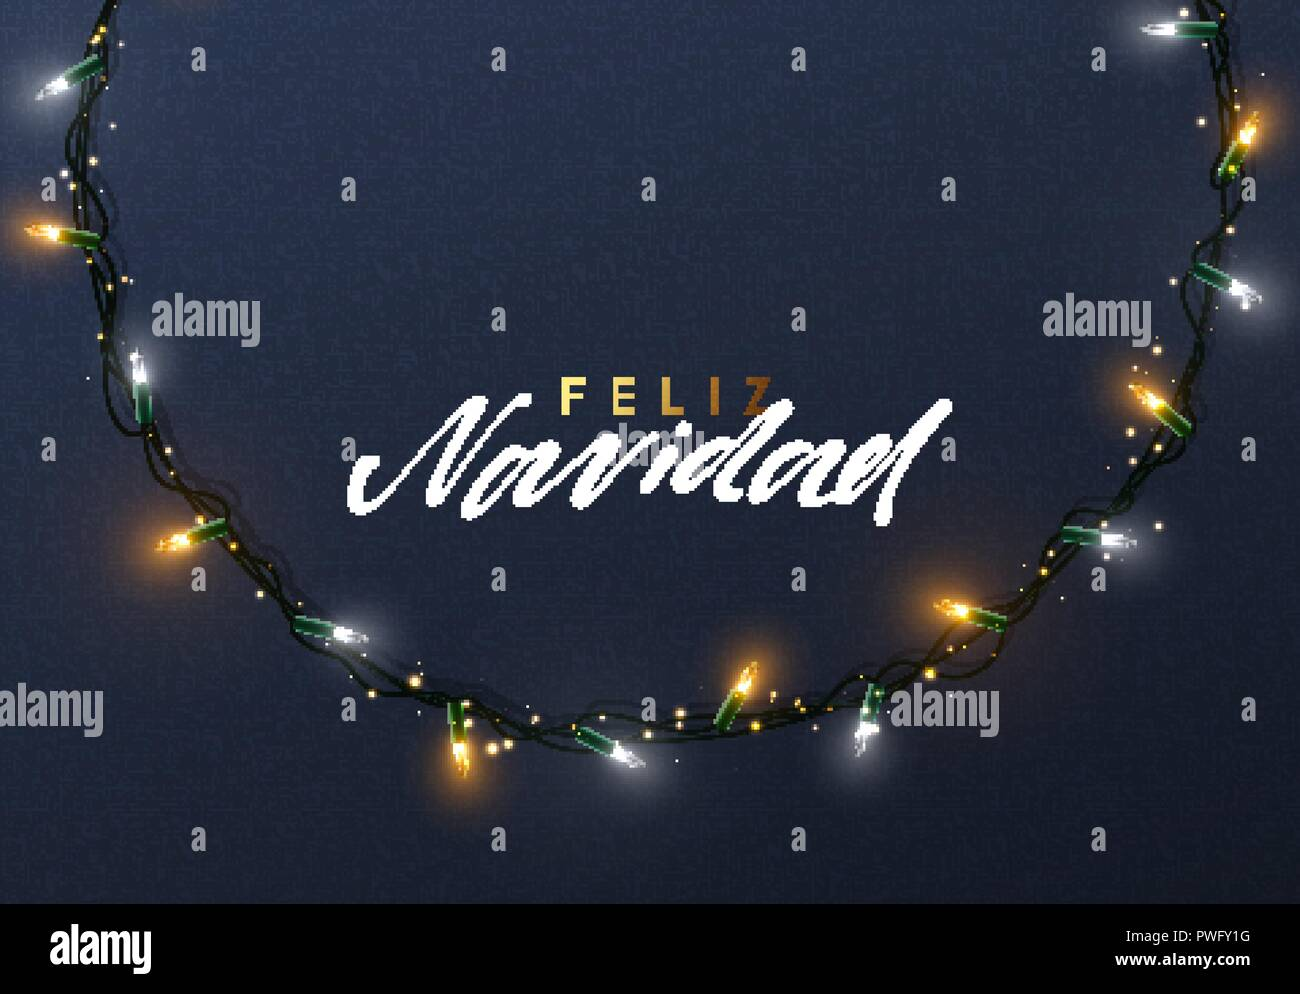 Spanish Christmas Cards Stock Vector Images - Alamy